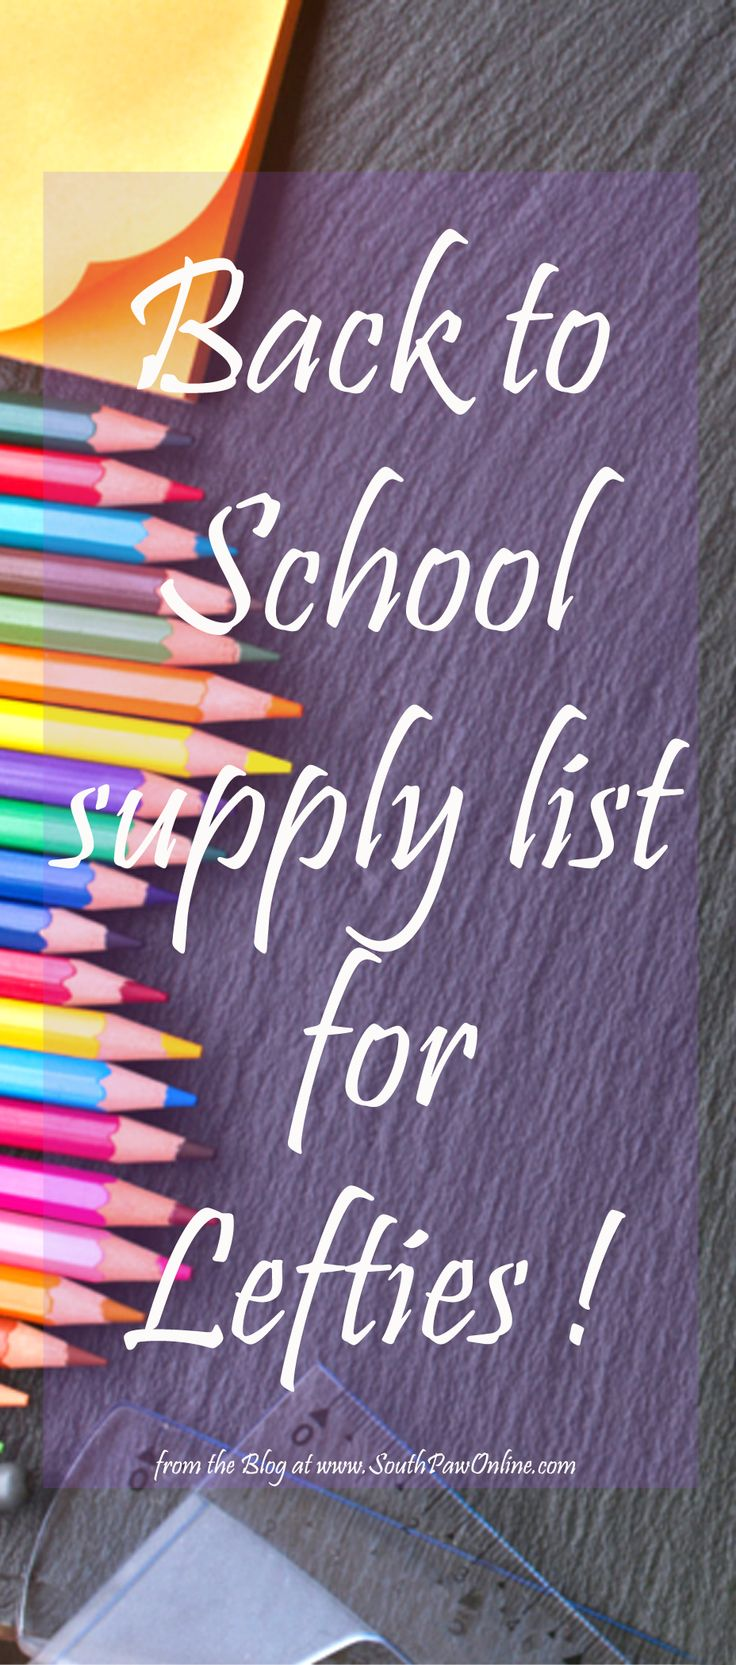 National Left Handers Day + back to school list. Luckily now a days your left-handed child can thrive in school with today's specially made products. Click to read more.